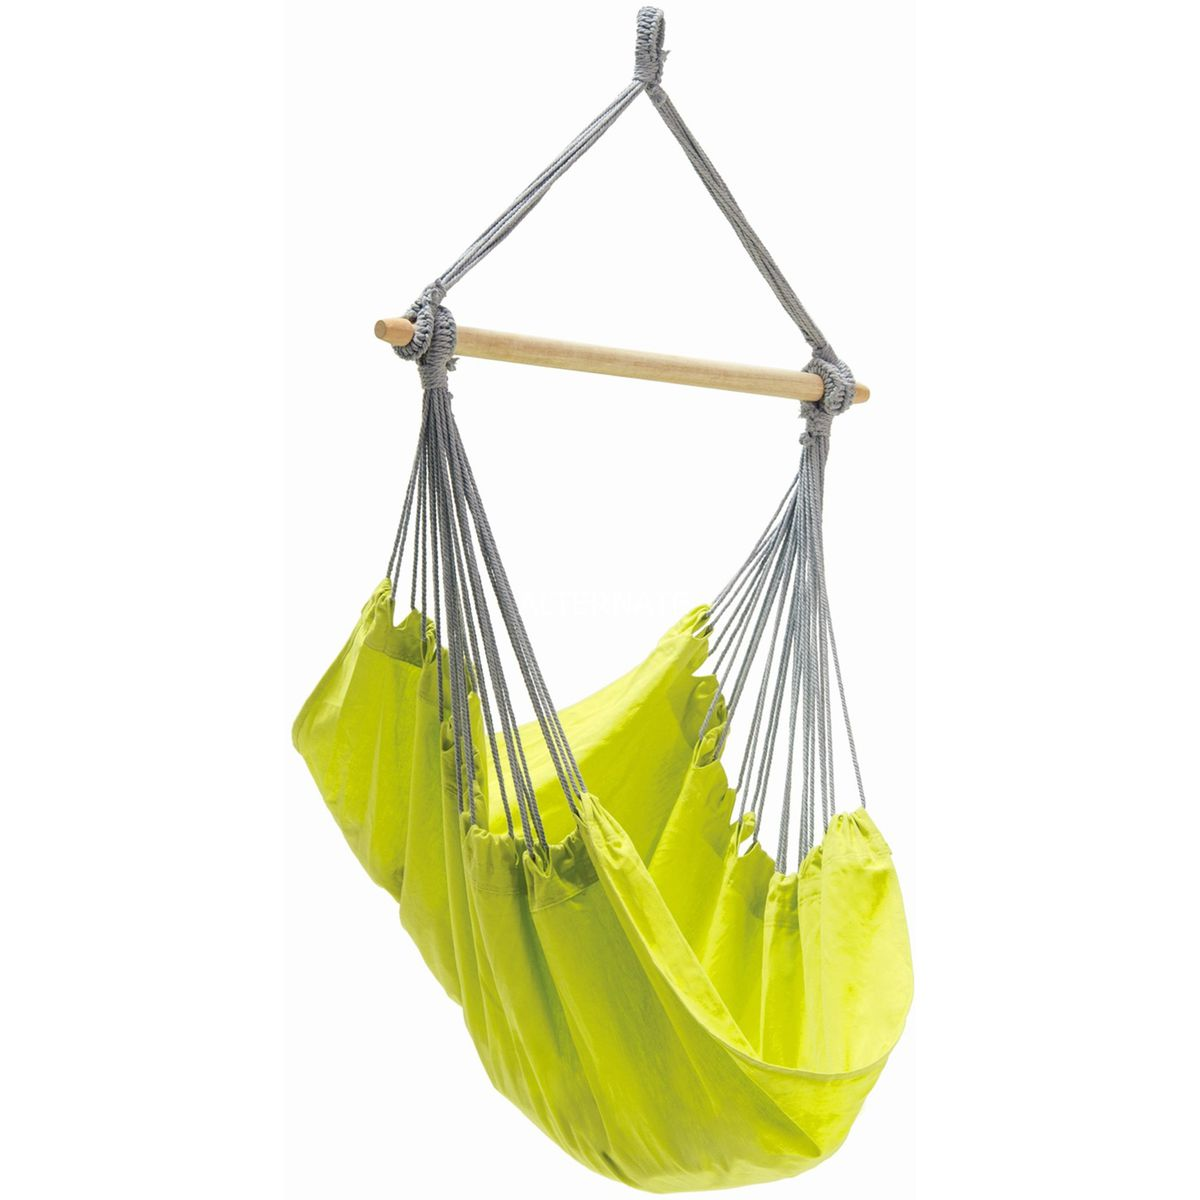 Amazonas Panama Kiwi Hanging Chair - Ruby's Garden Boutique